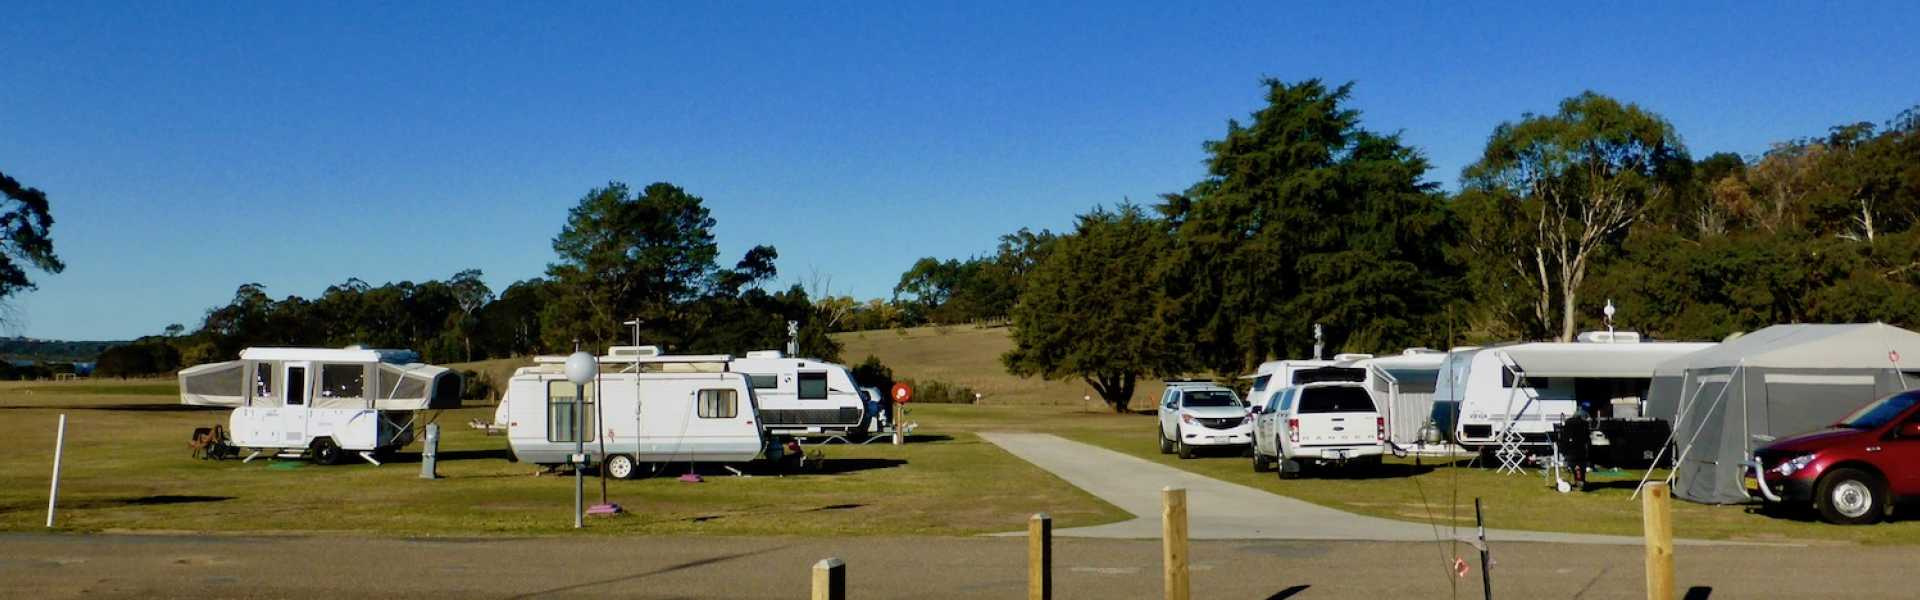 Kui Parks, Merimbula Lake Holiday Park, Pambula, Sites